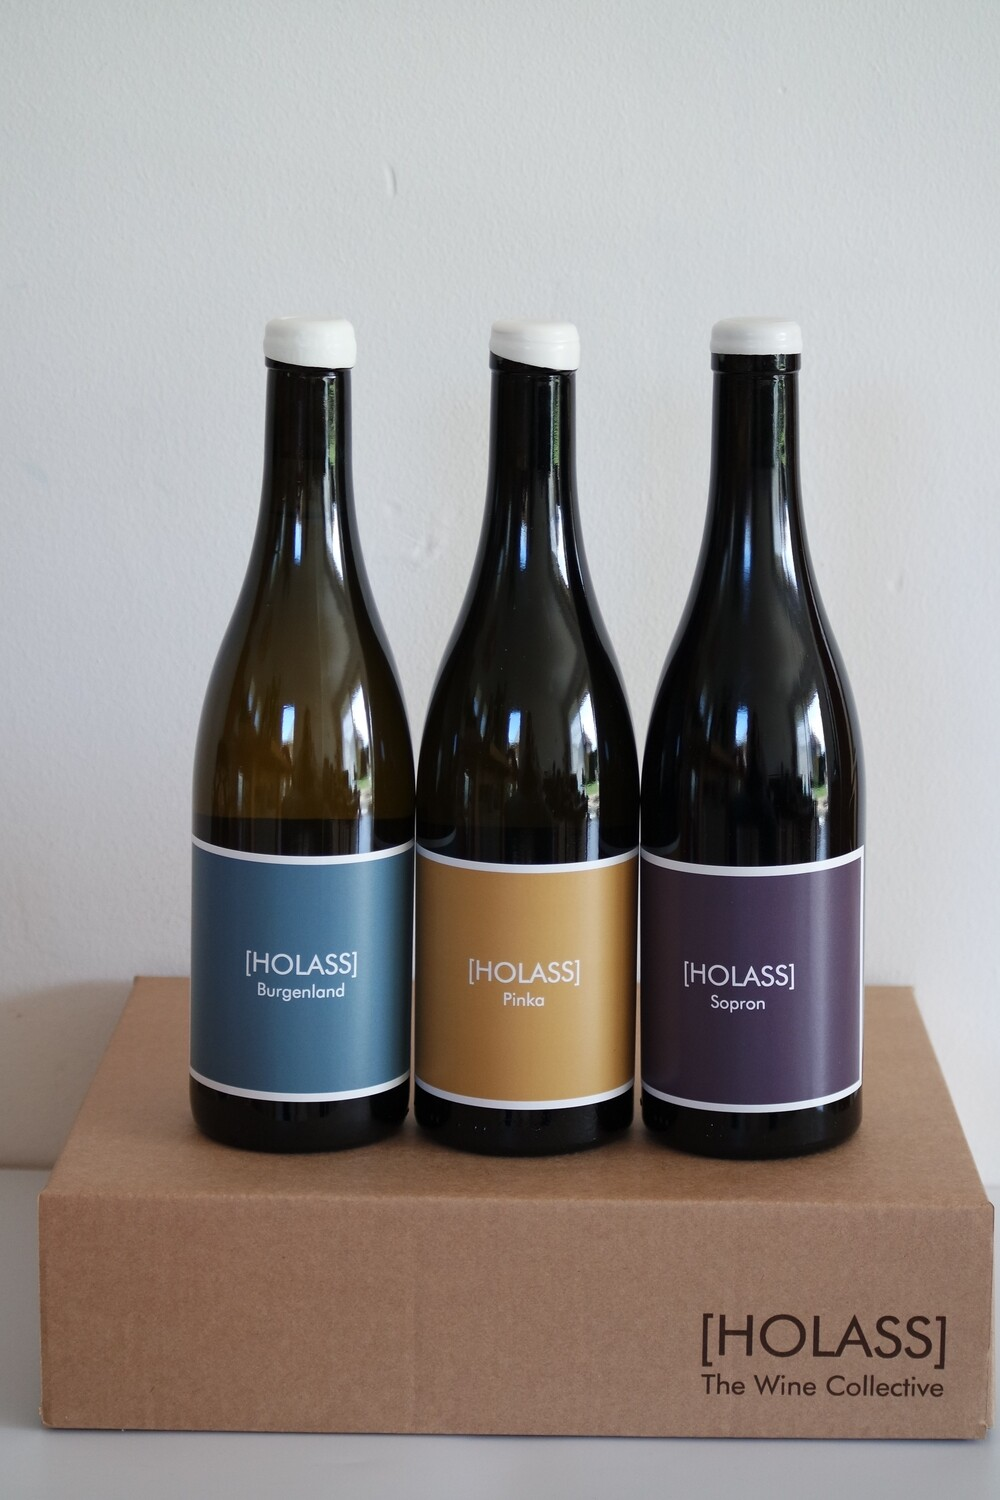 GIFT BOX with 3 [HOLASS] bottles